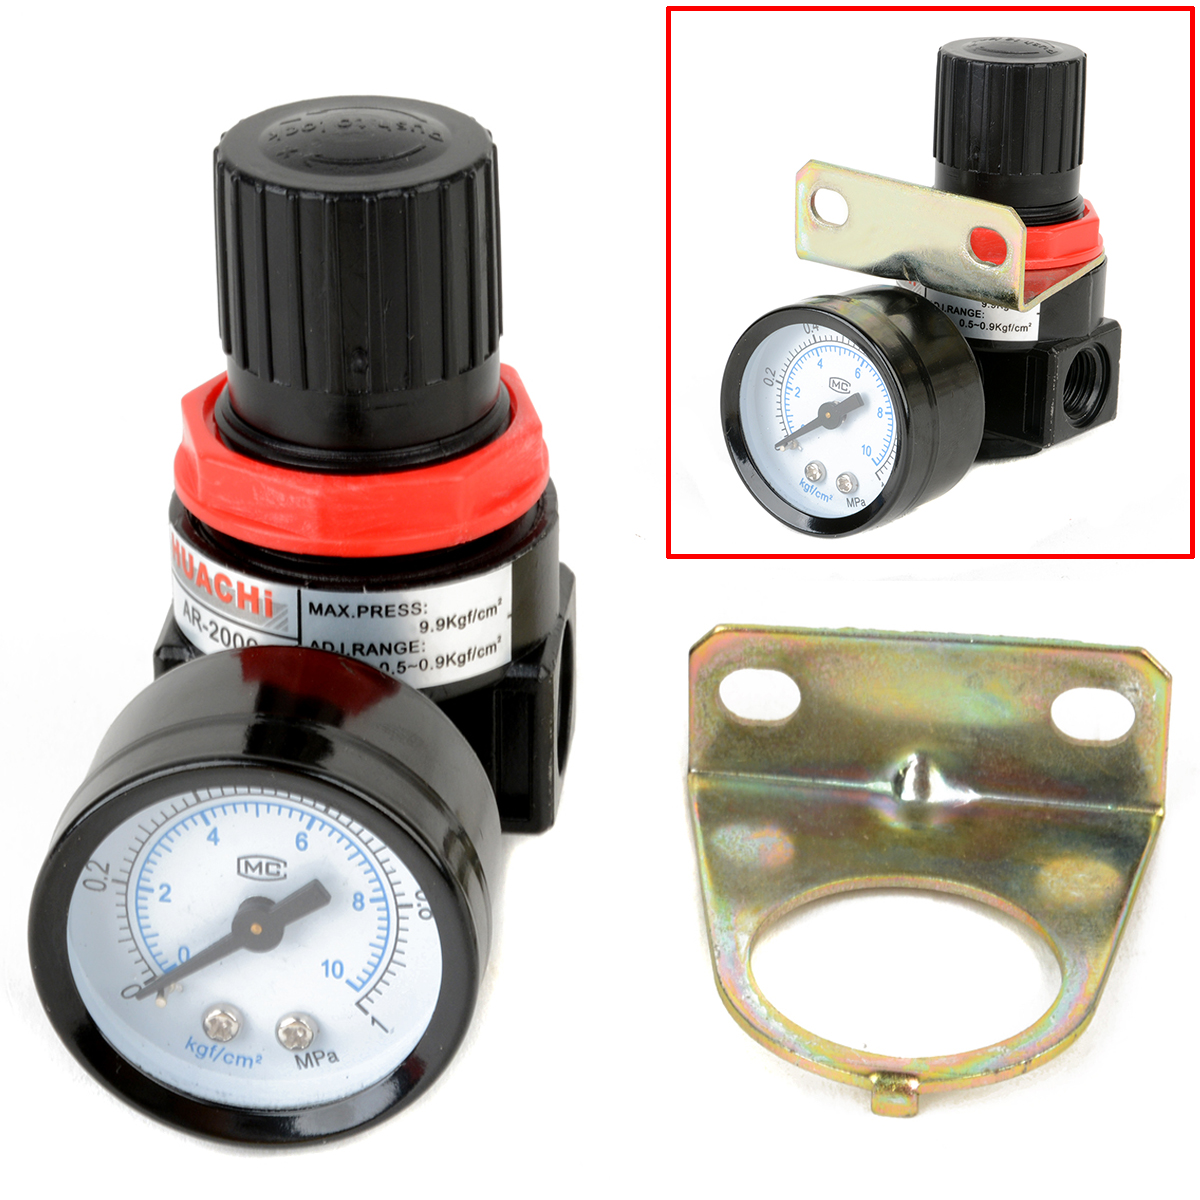 1pc AR2000 Compressor Air Control Pressure Relief Reducing Regulator Regulating Valve With Gauge Mayitr Pneumatic Parts 180psi air compressor pressure valve switch manifold relief gauges regulator set